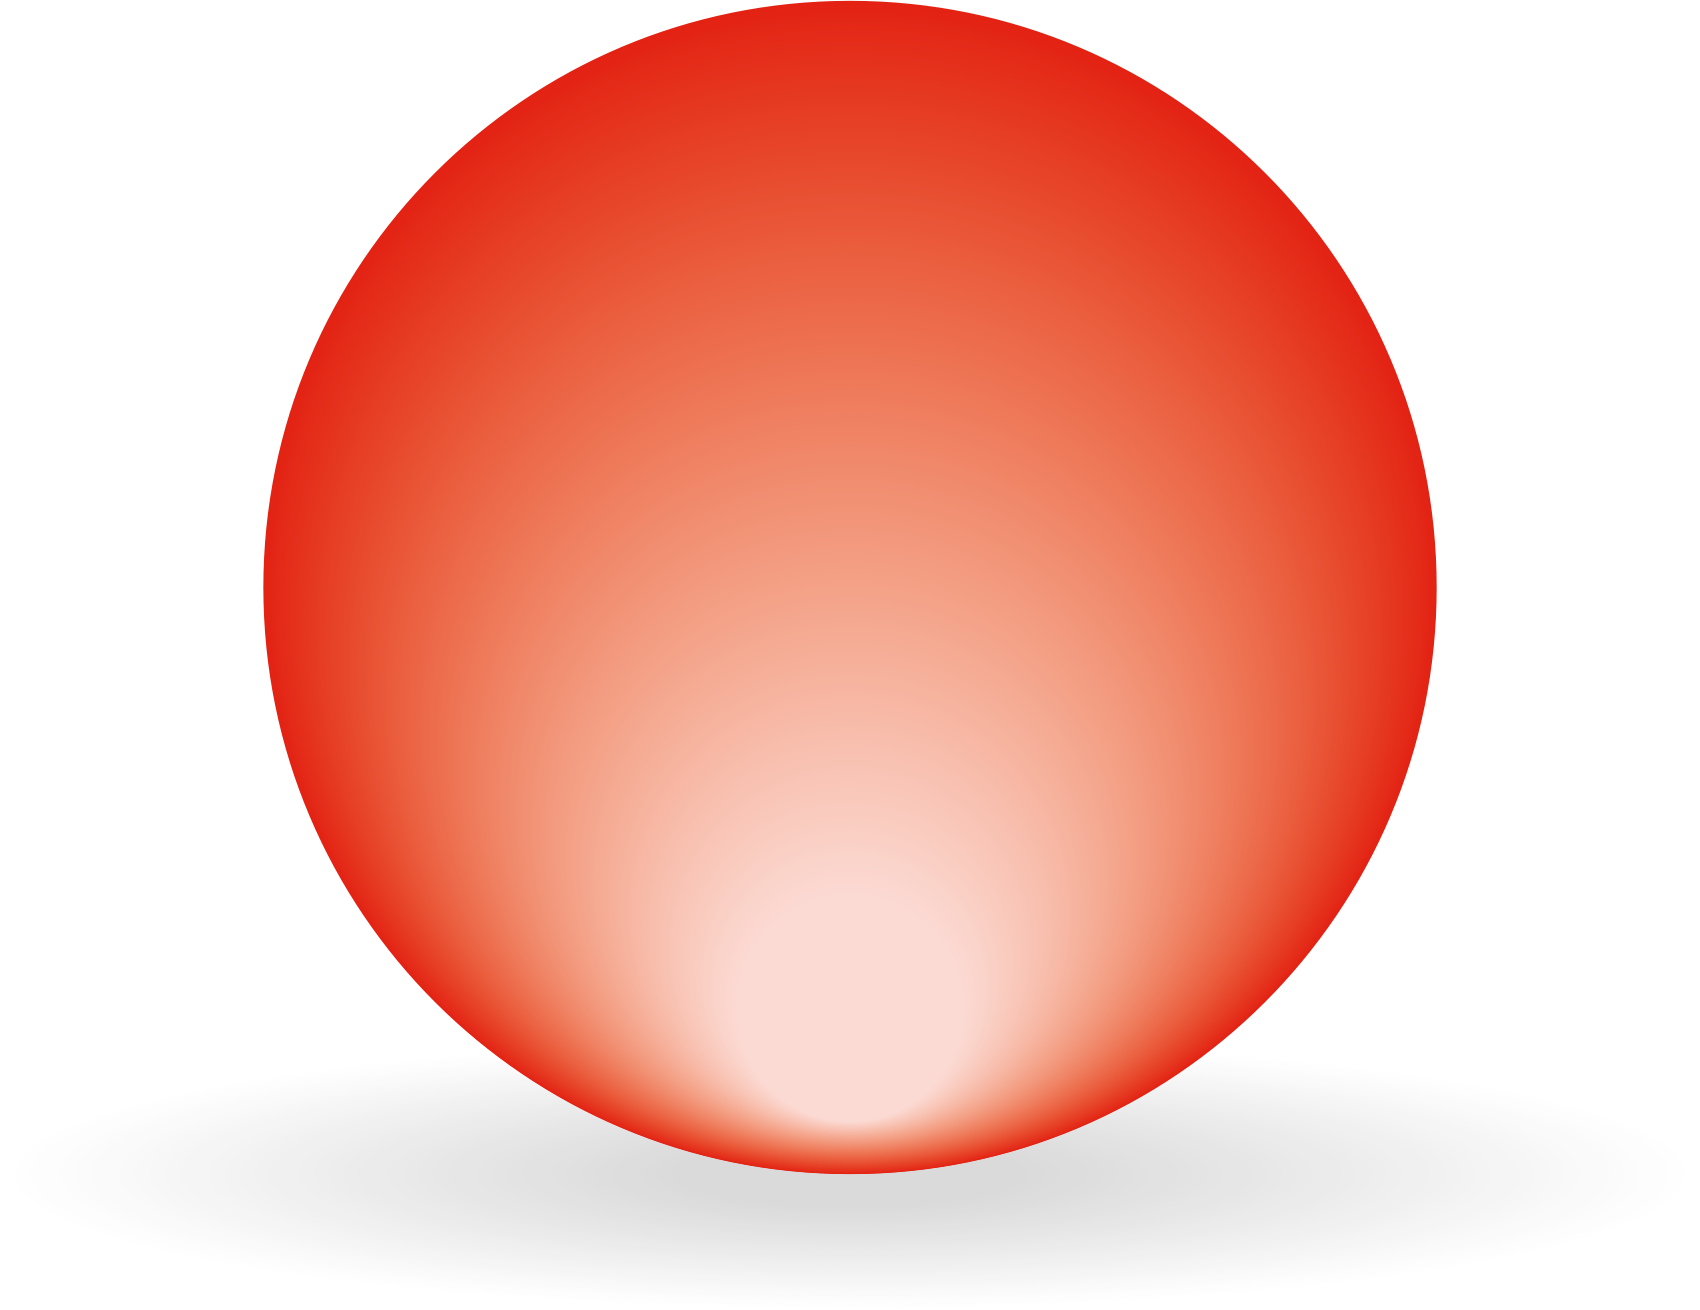 Sphere clipart red. Big image png